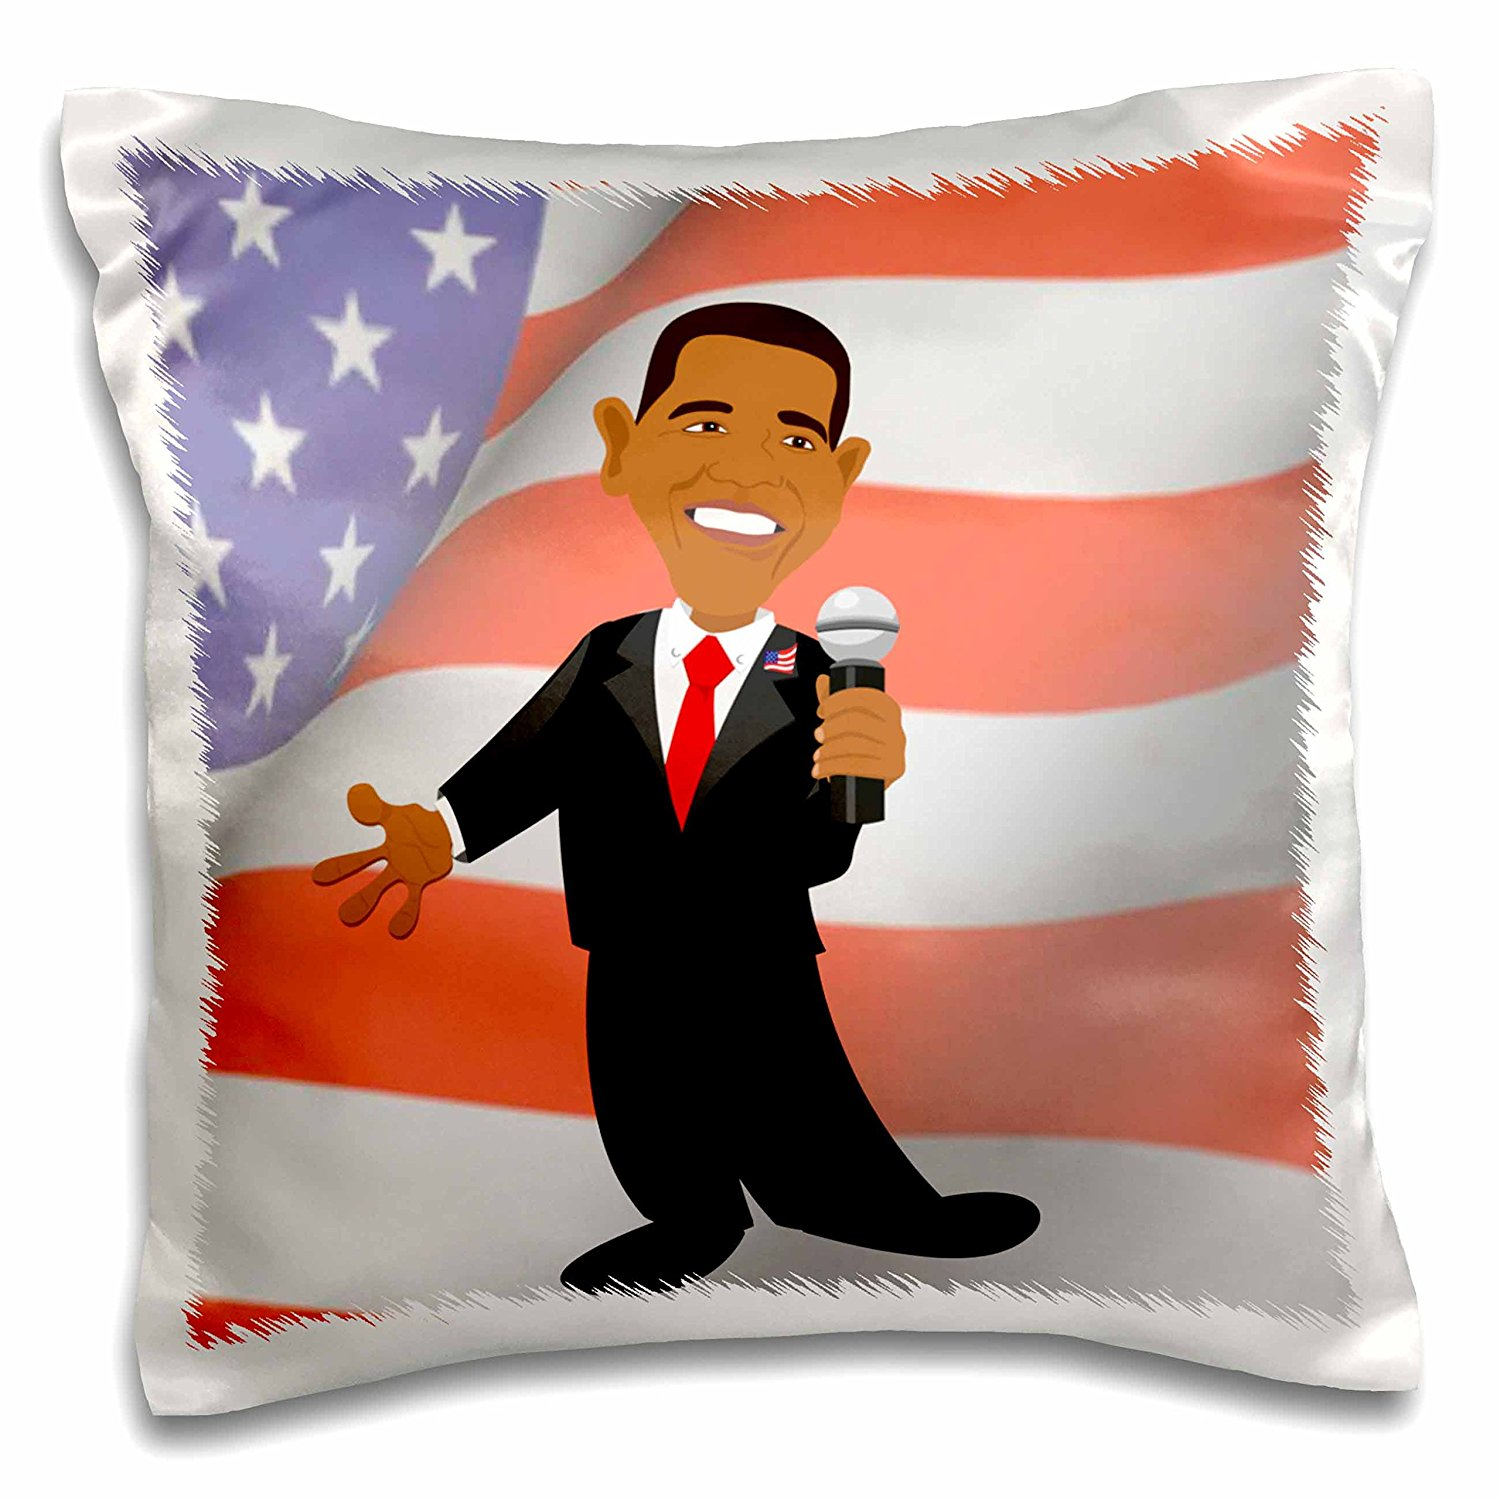 Edmond Hogge Jr Presidents - President Barack Obama With American Flag - 16x16 inch Pillow Case (pc_60091_1)